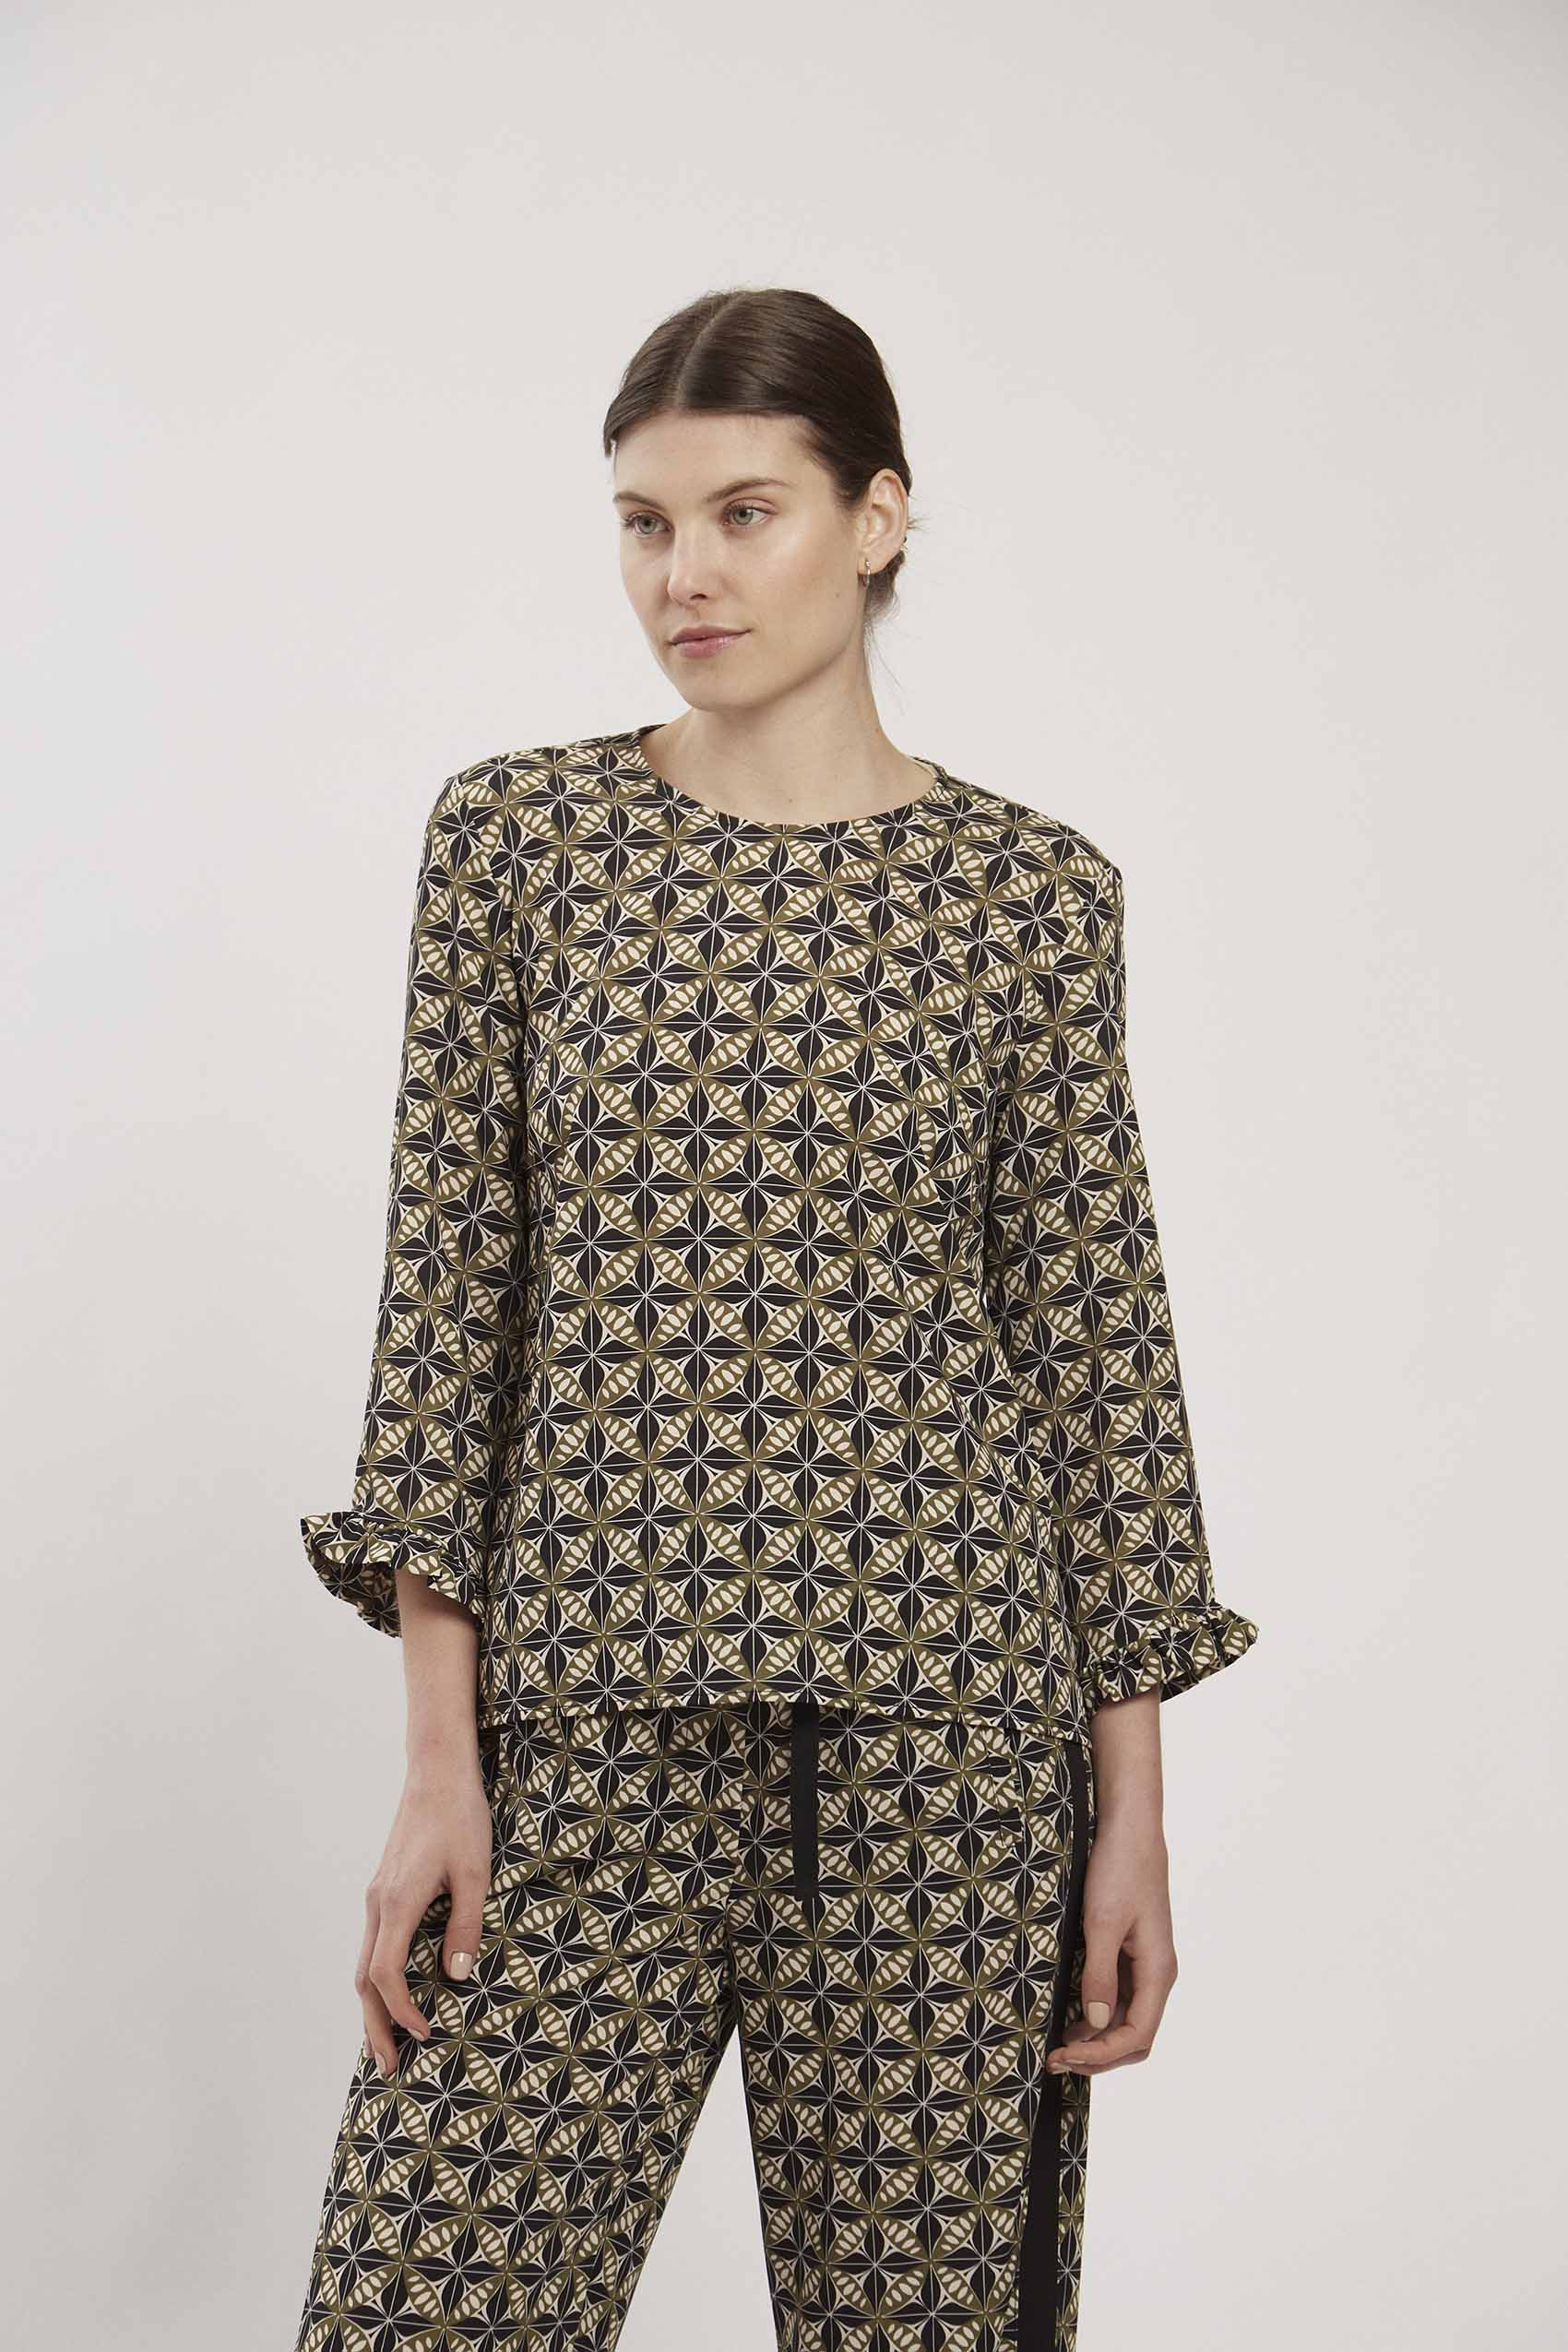 awada_blusa-aaron_43-06-2021__picture-17299